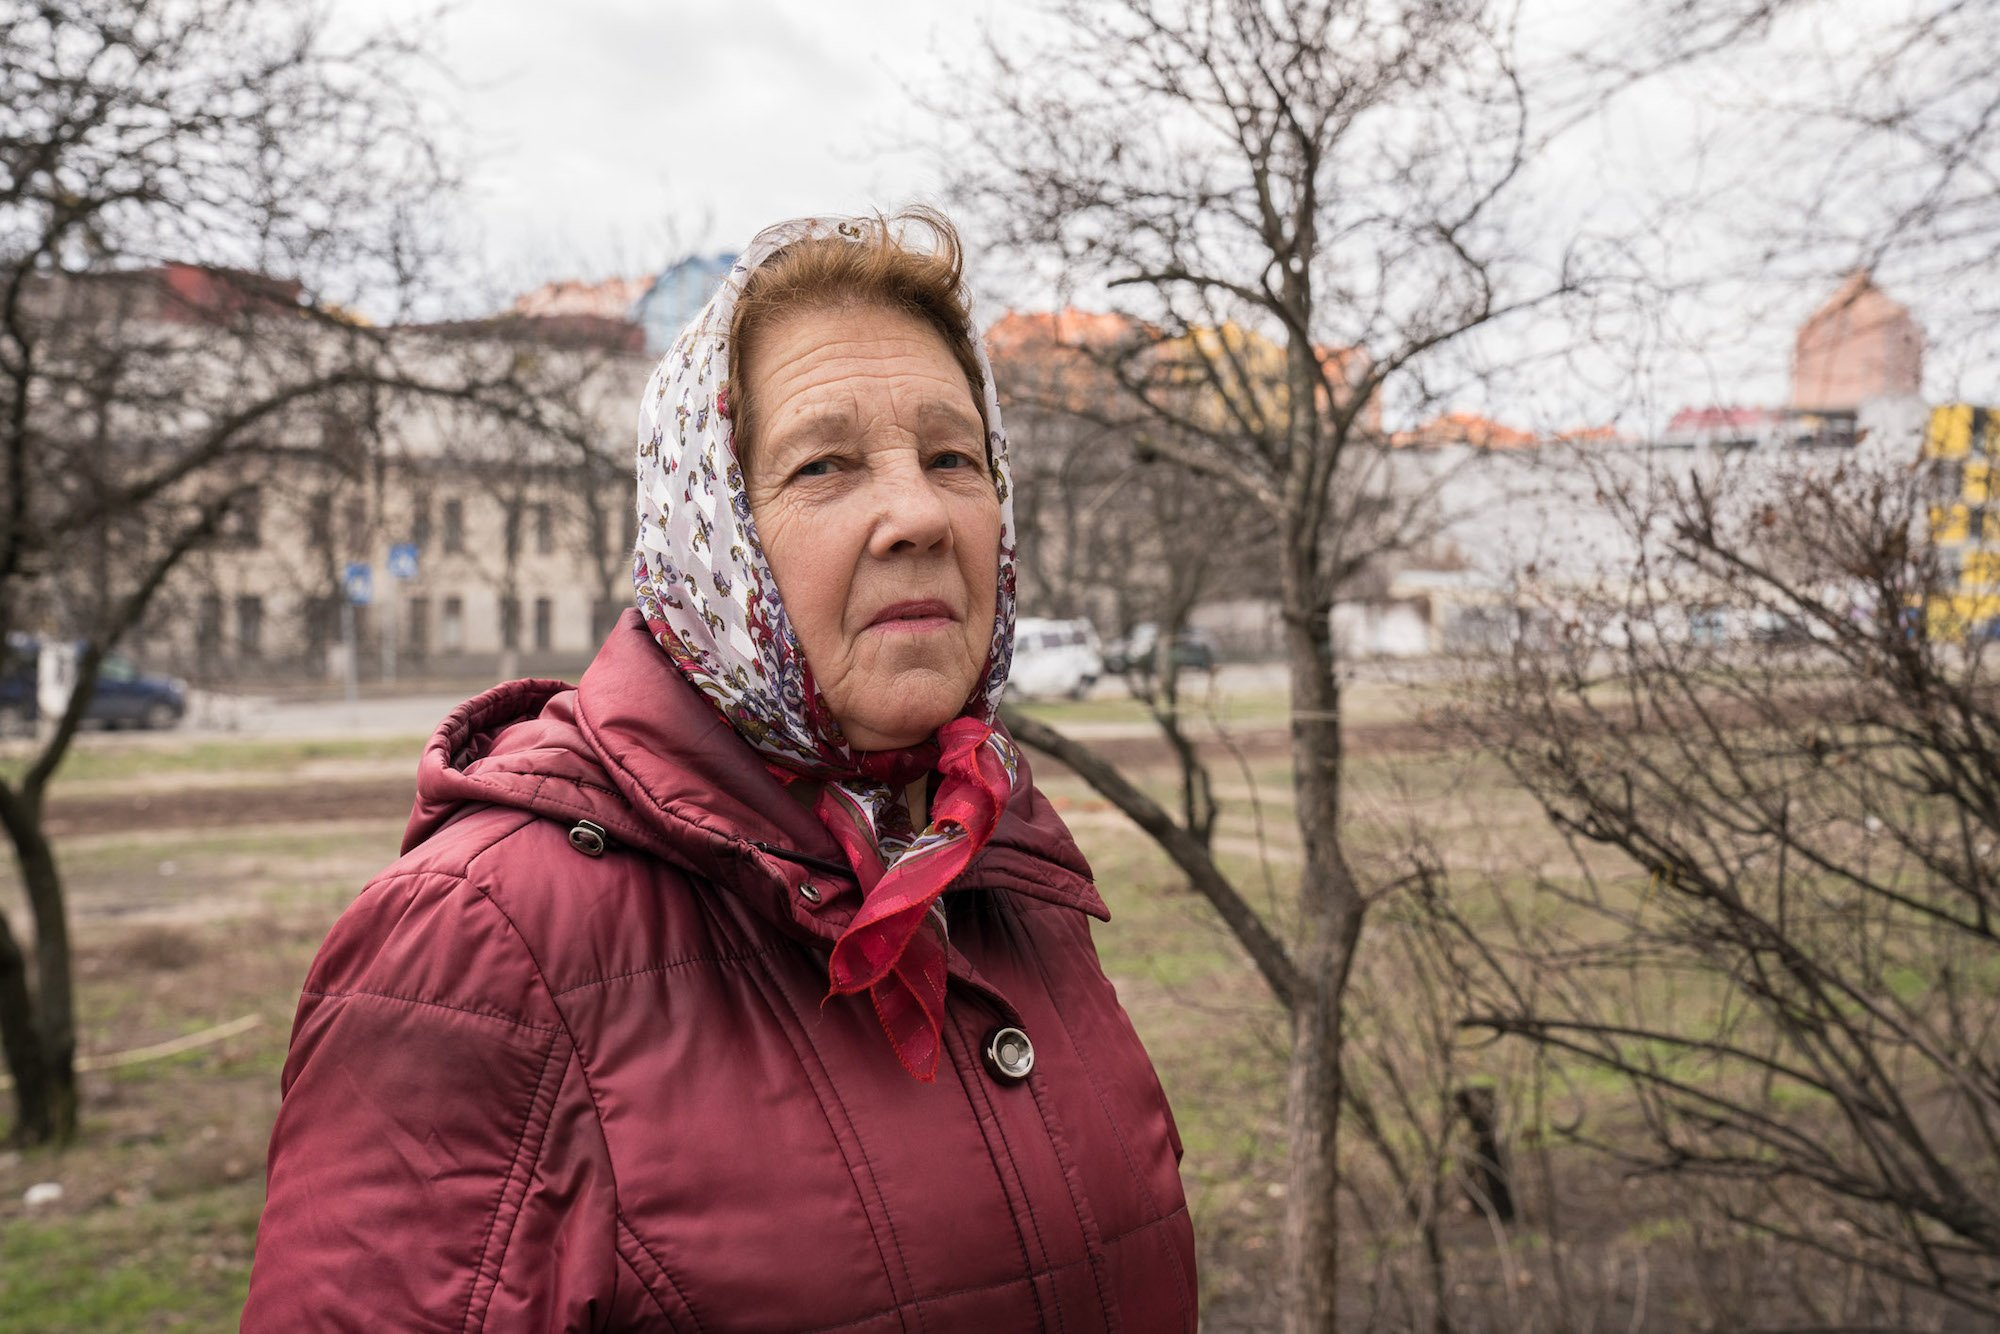 Maria, 76, is retired and lives in a krushchevska overlooking Comfort Town